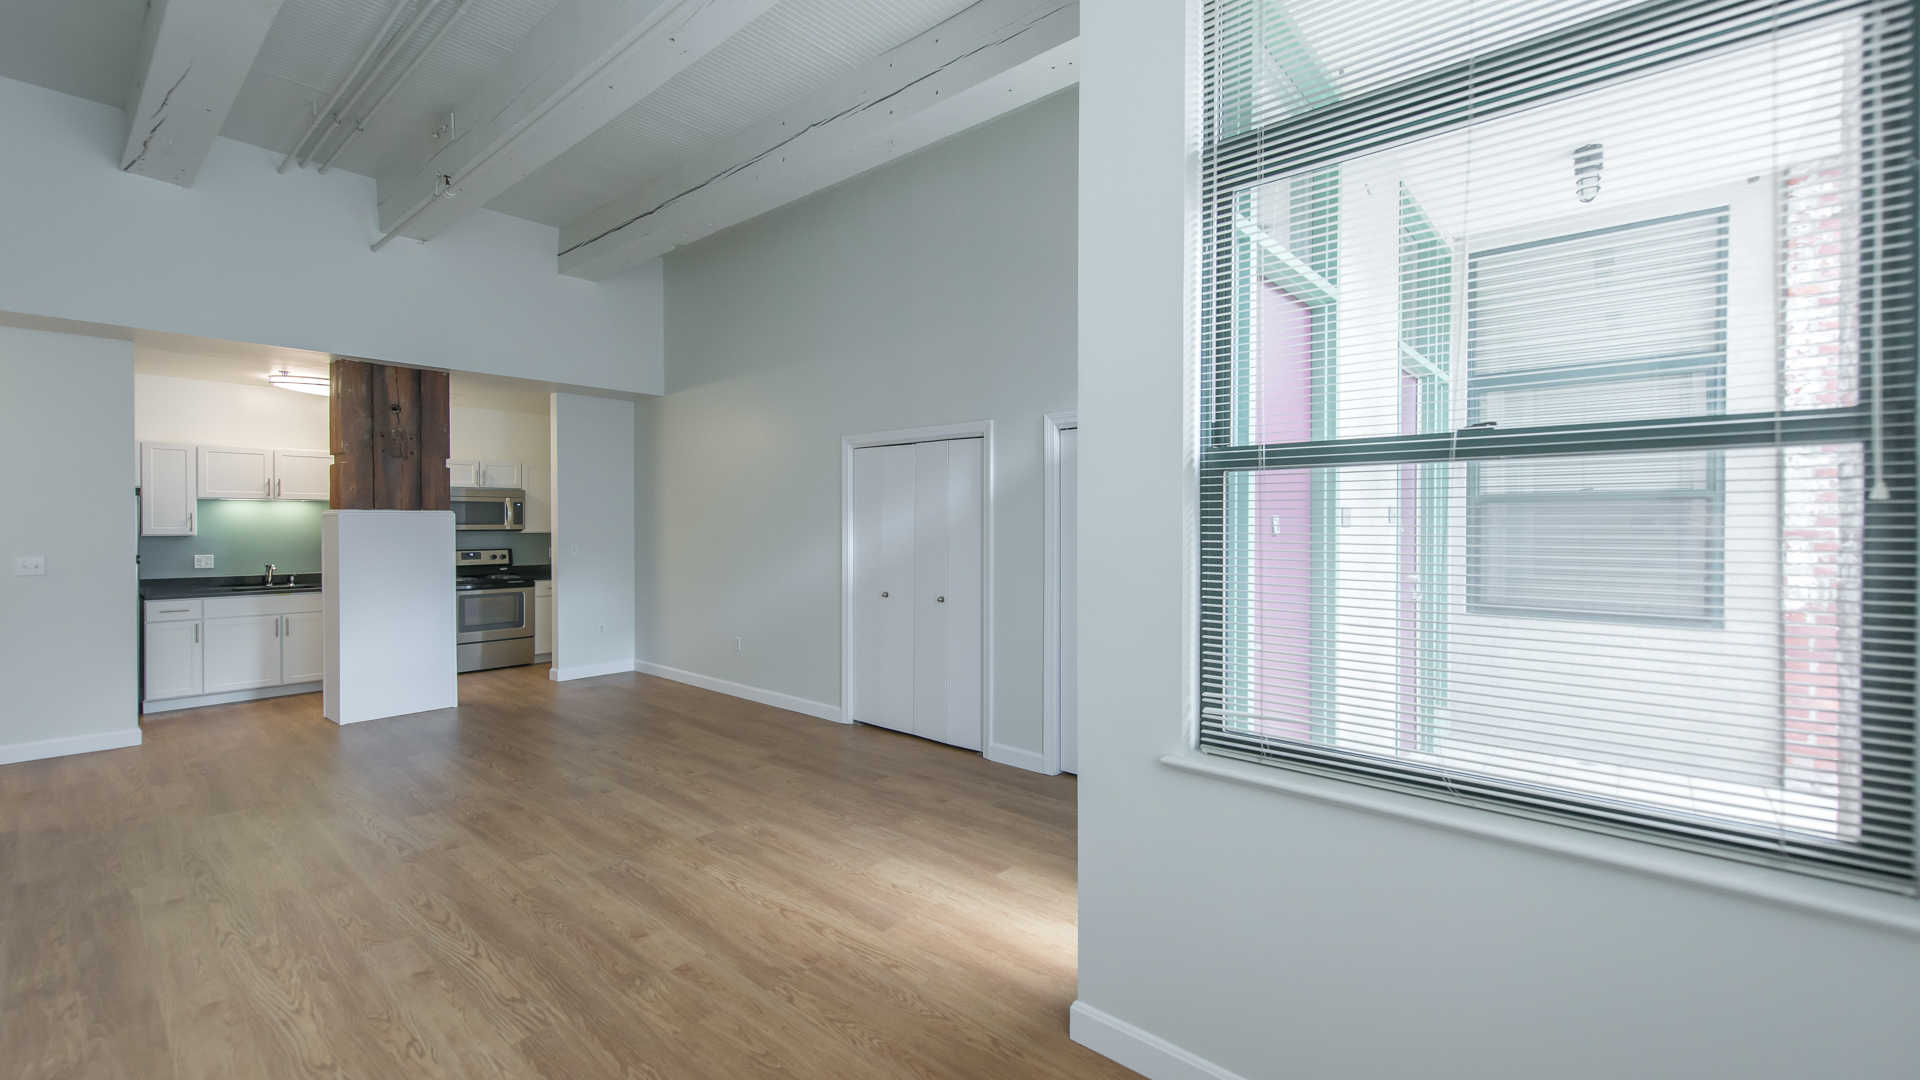 Lofts at kendall square apartments living area